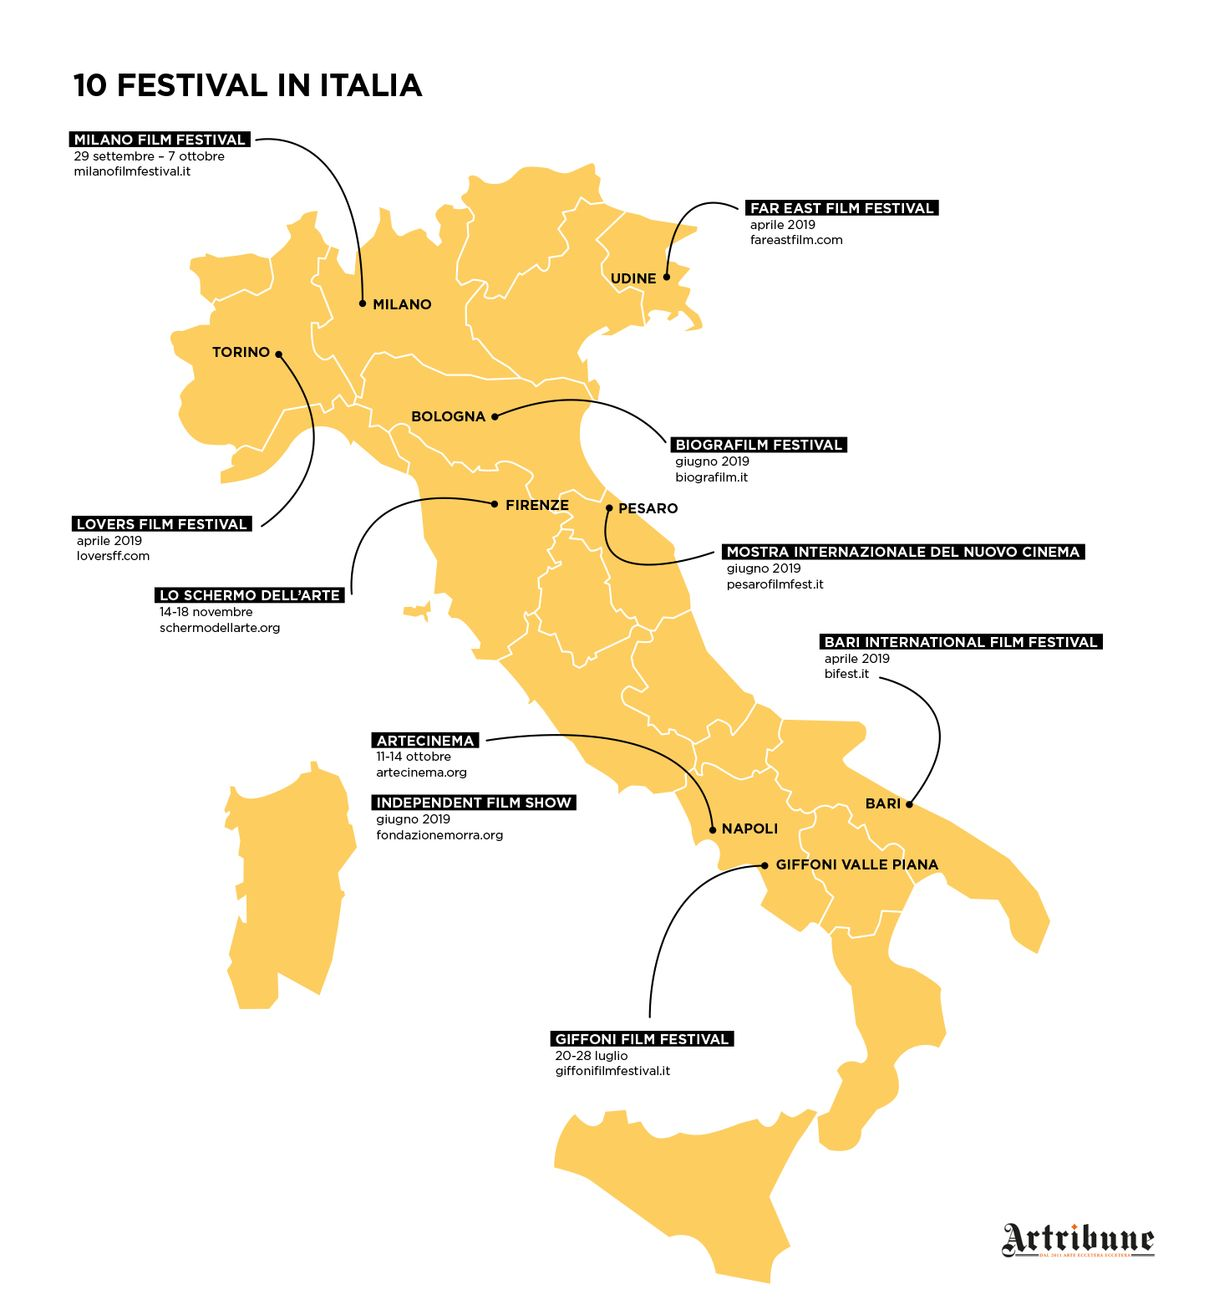 10 festival di cinema in Italia © Artribune Magazine